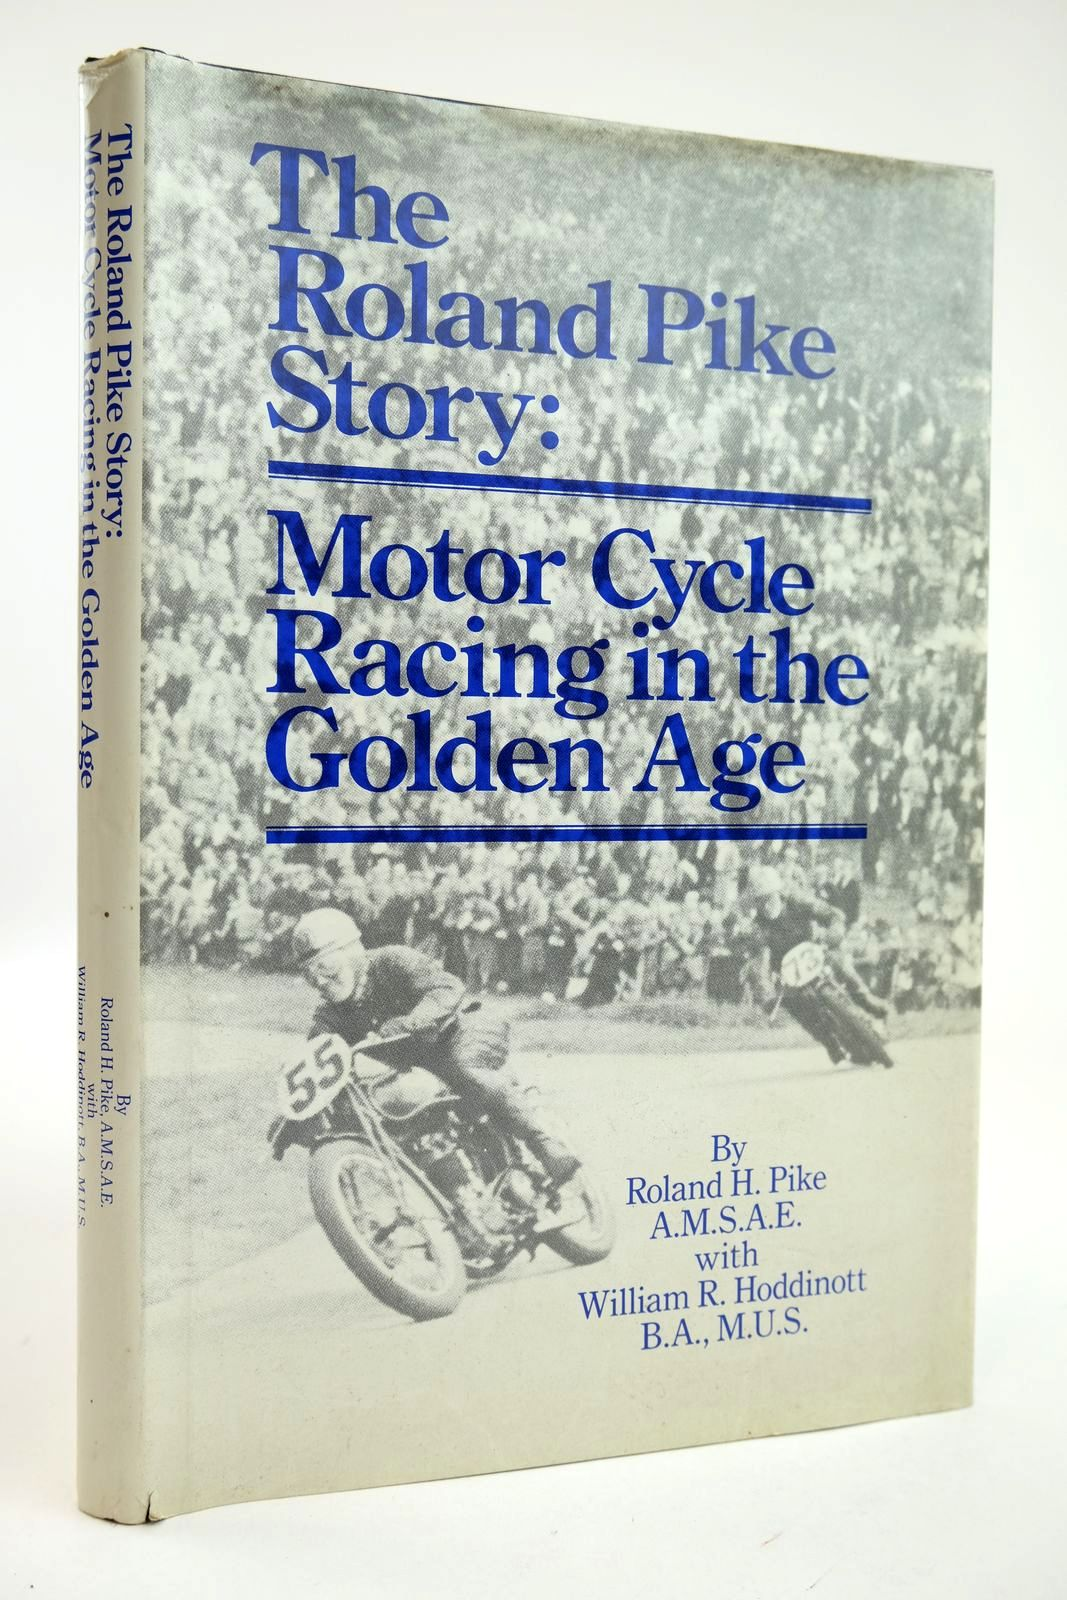 Photo of THE ROLAND PIKE STORY MOTOR CYCLE RACING IN THE GOLDEN AGE written by Pike, Roland H. Hoddinott, William R. published by Roland H. Pike (STOCK CODE: 2132360)  for sale by Stella & Rose's Books